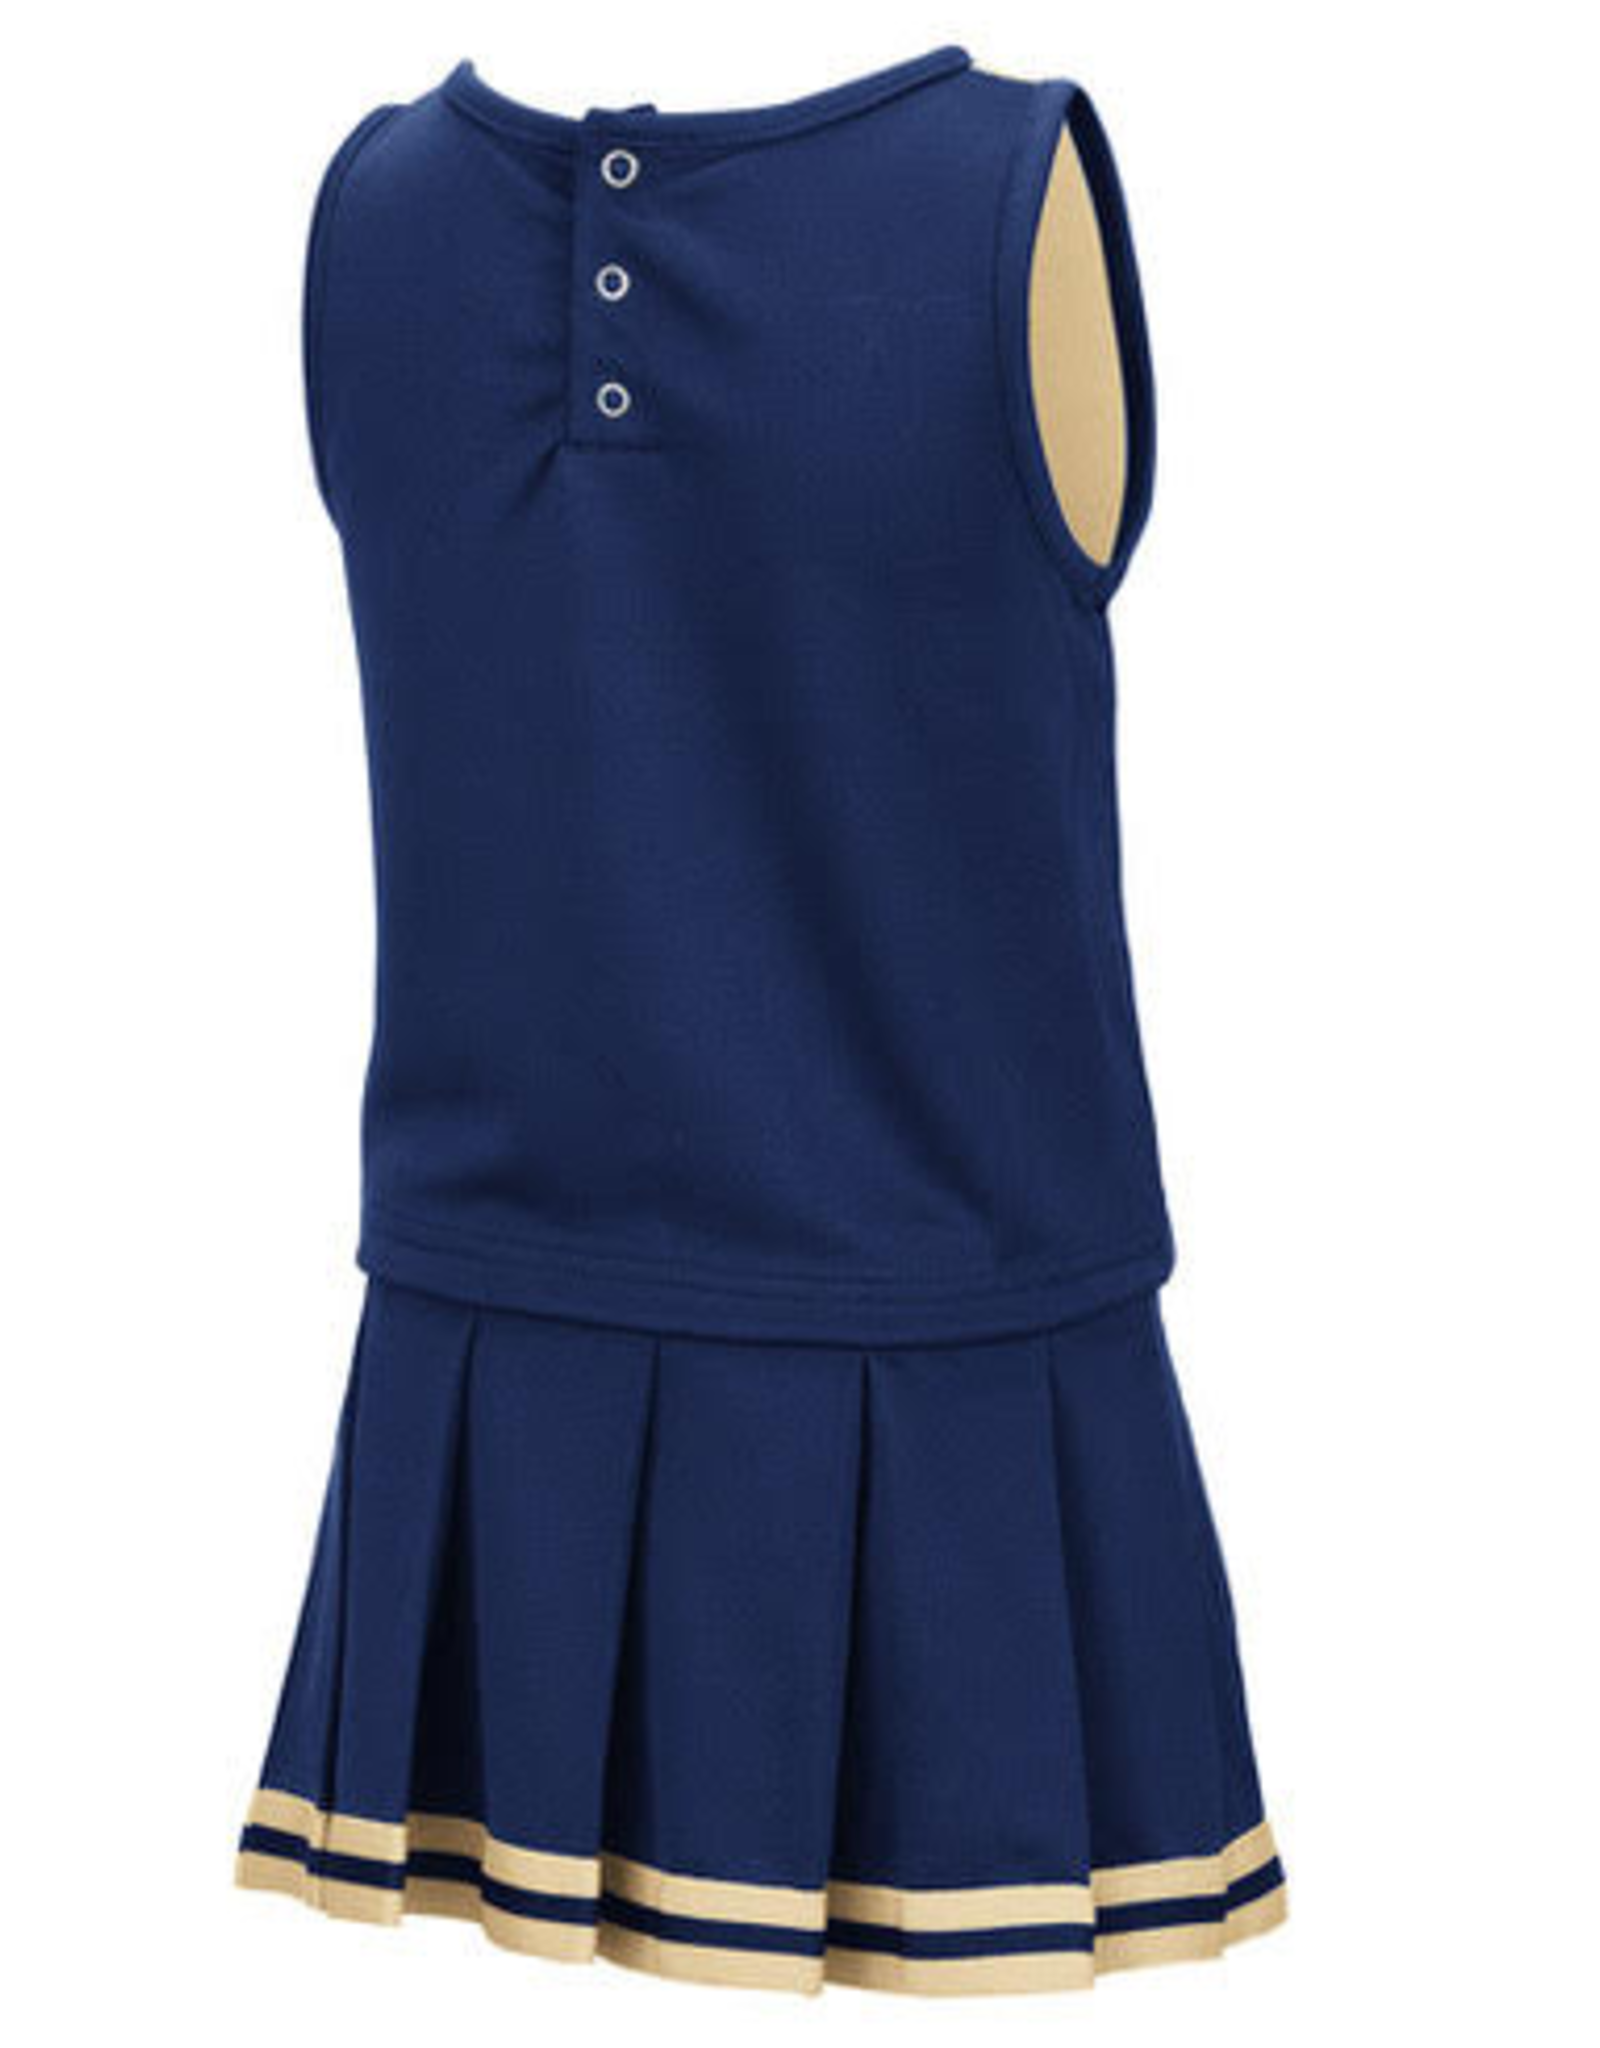 Toddler Cheer 2PC Dress